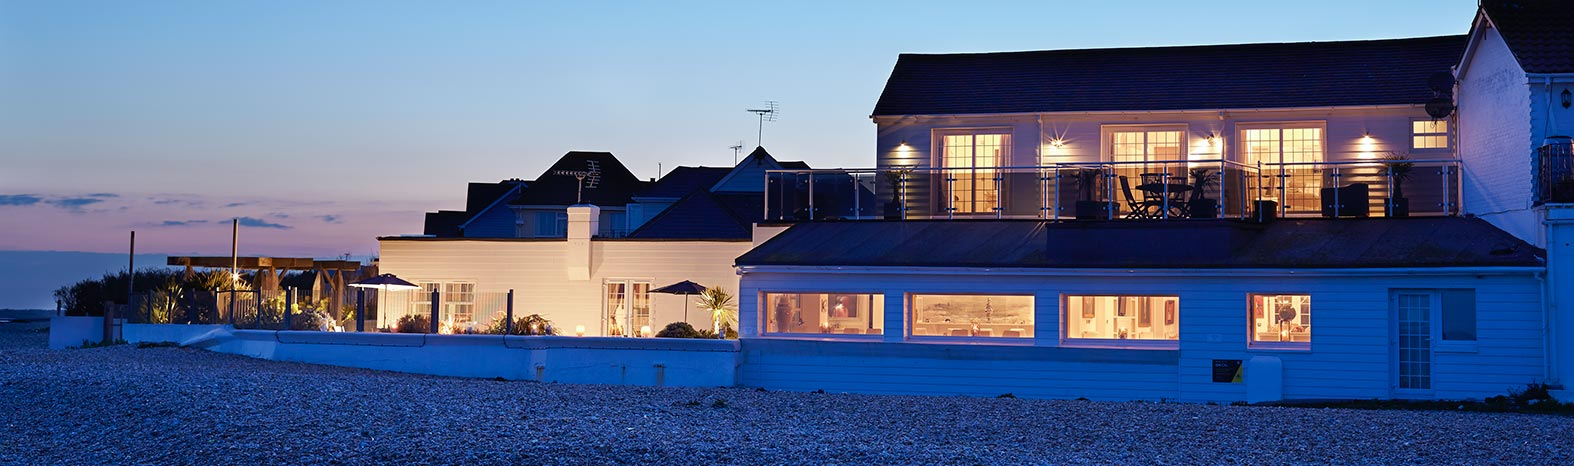 Luxury Beach House Rental Angmering on Sea